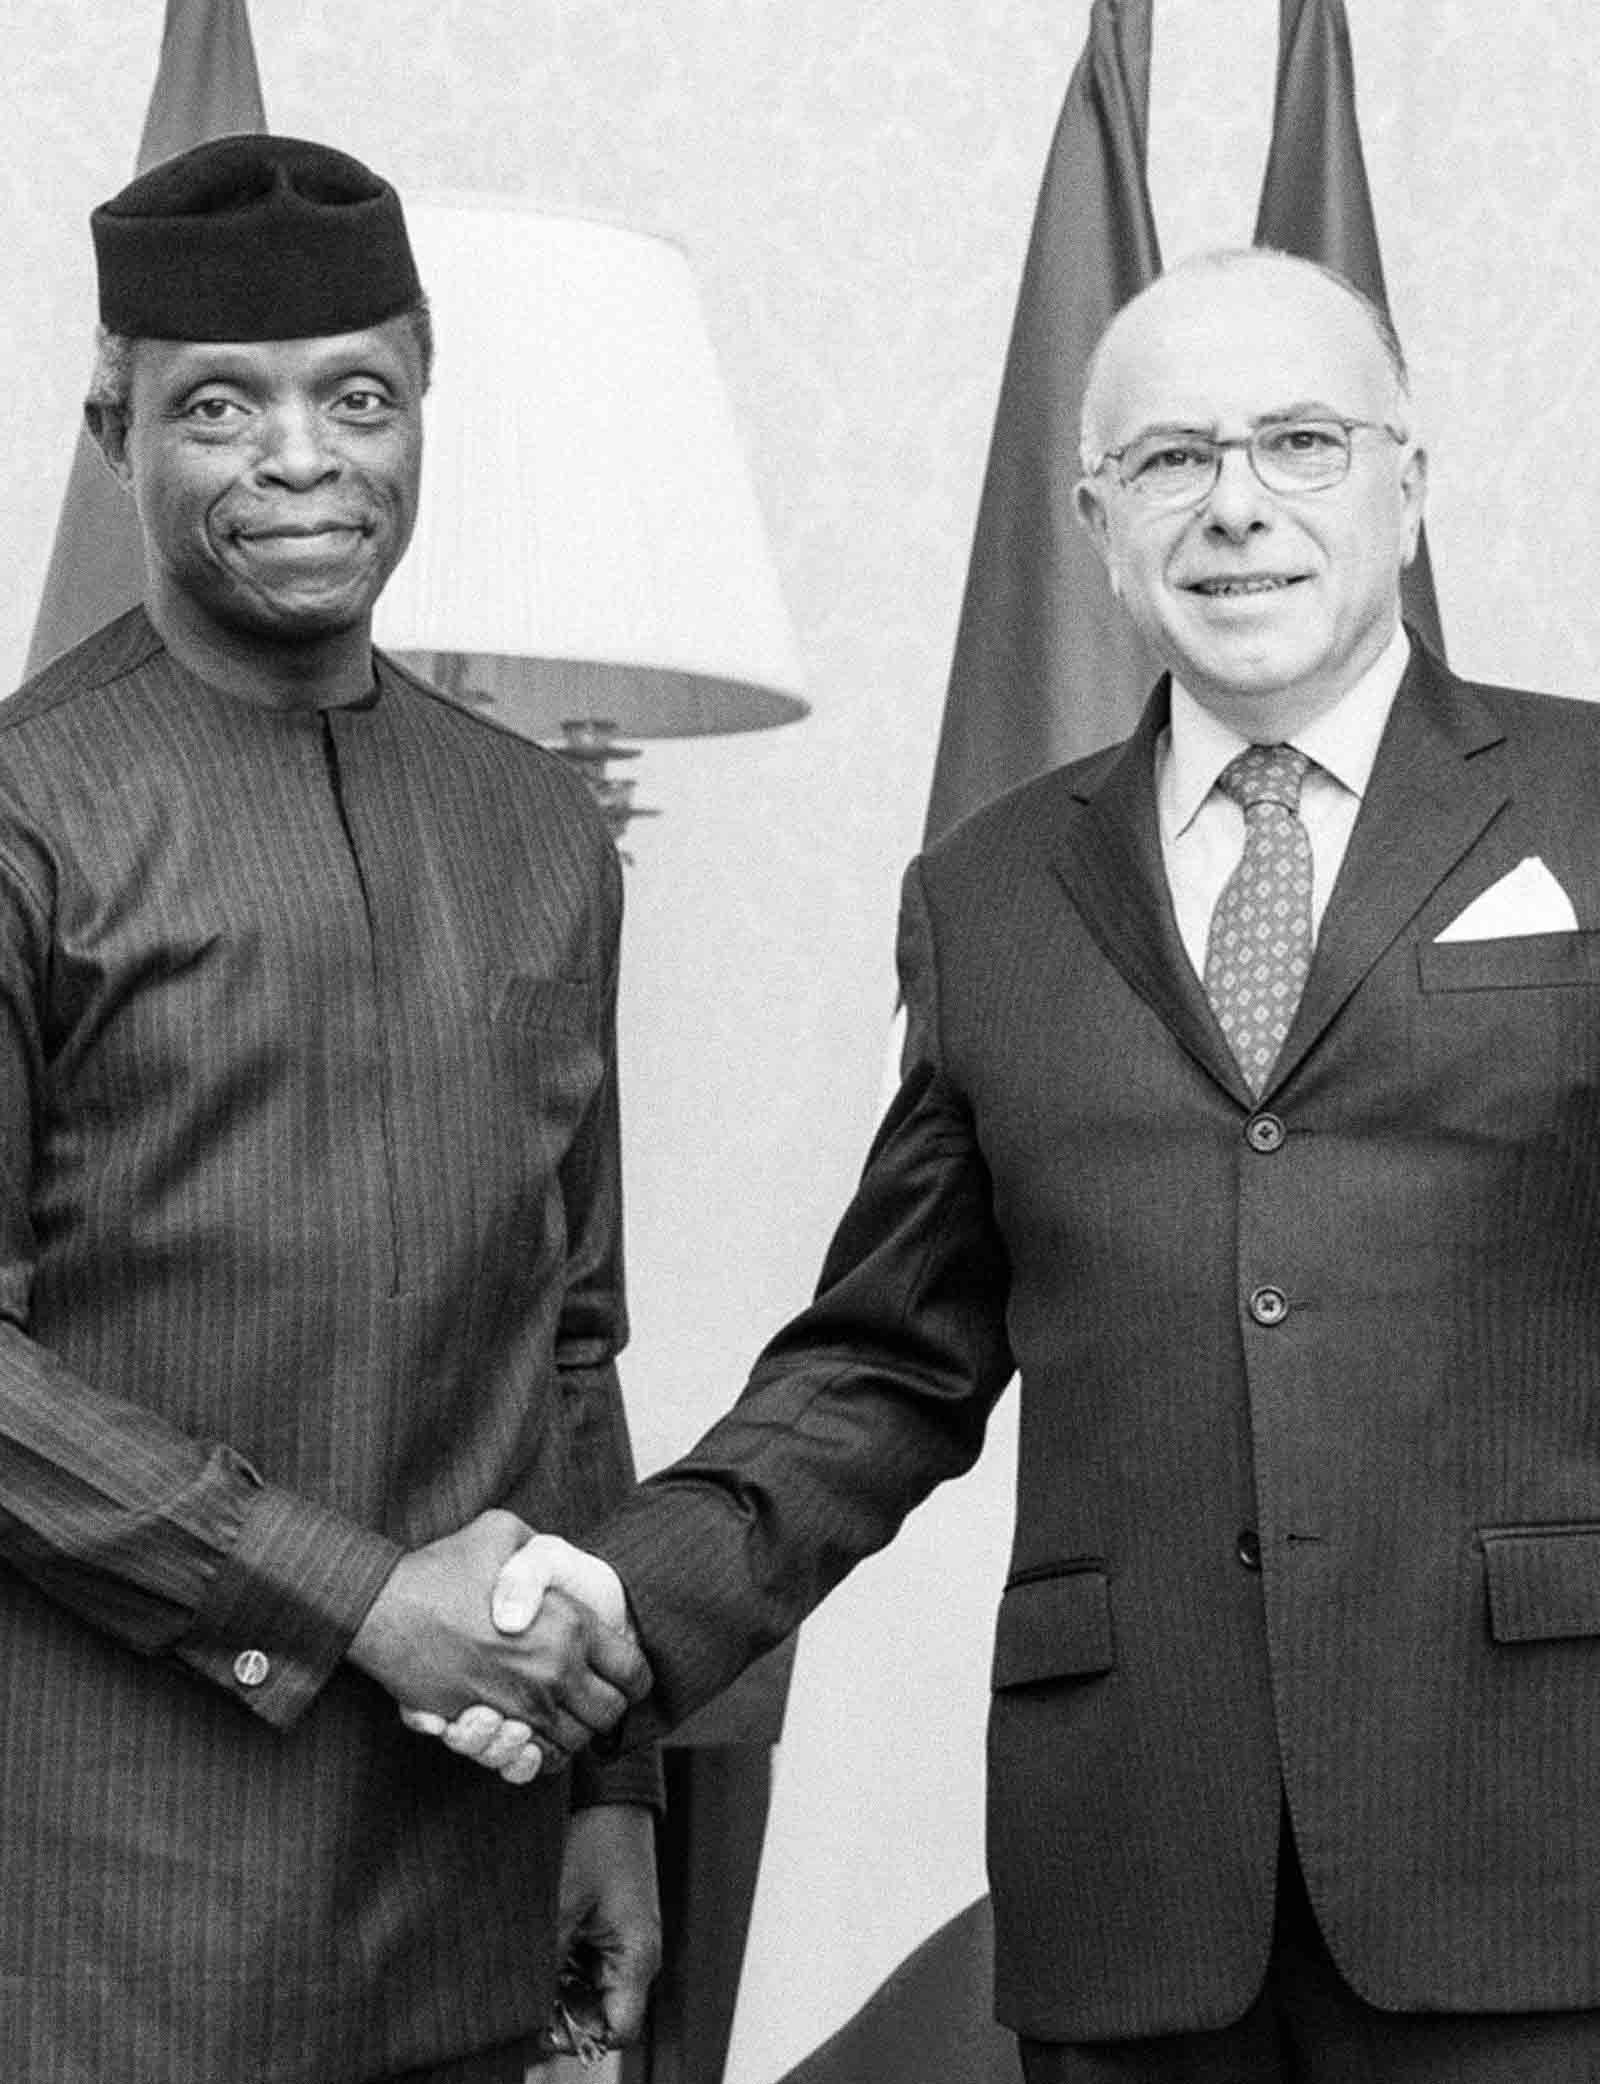 Vice President Osinbajo Meets With Bernard Cazeneuve in Paris at OECD's Anti-corruption Forum